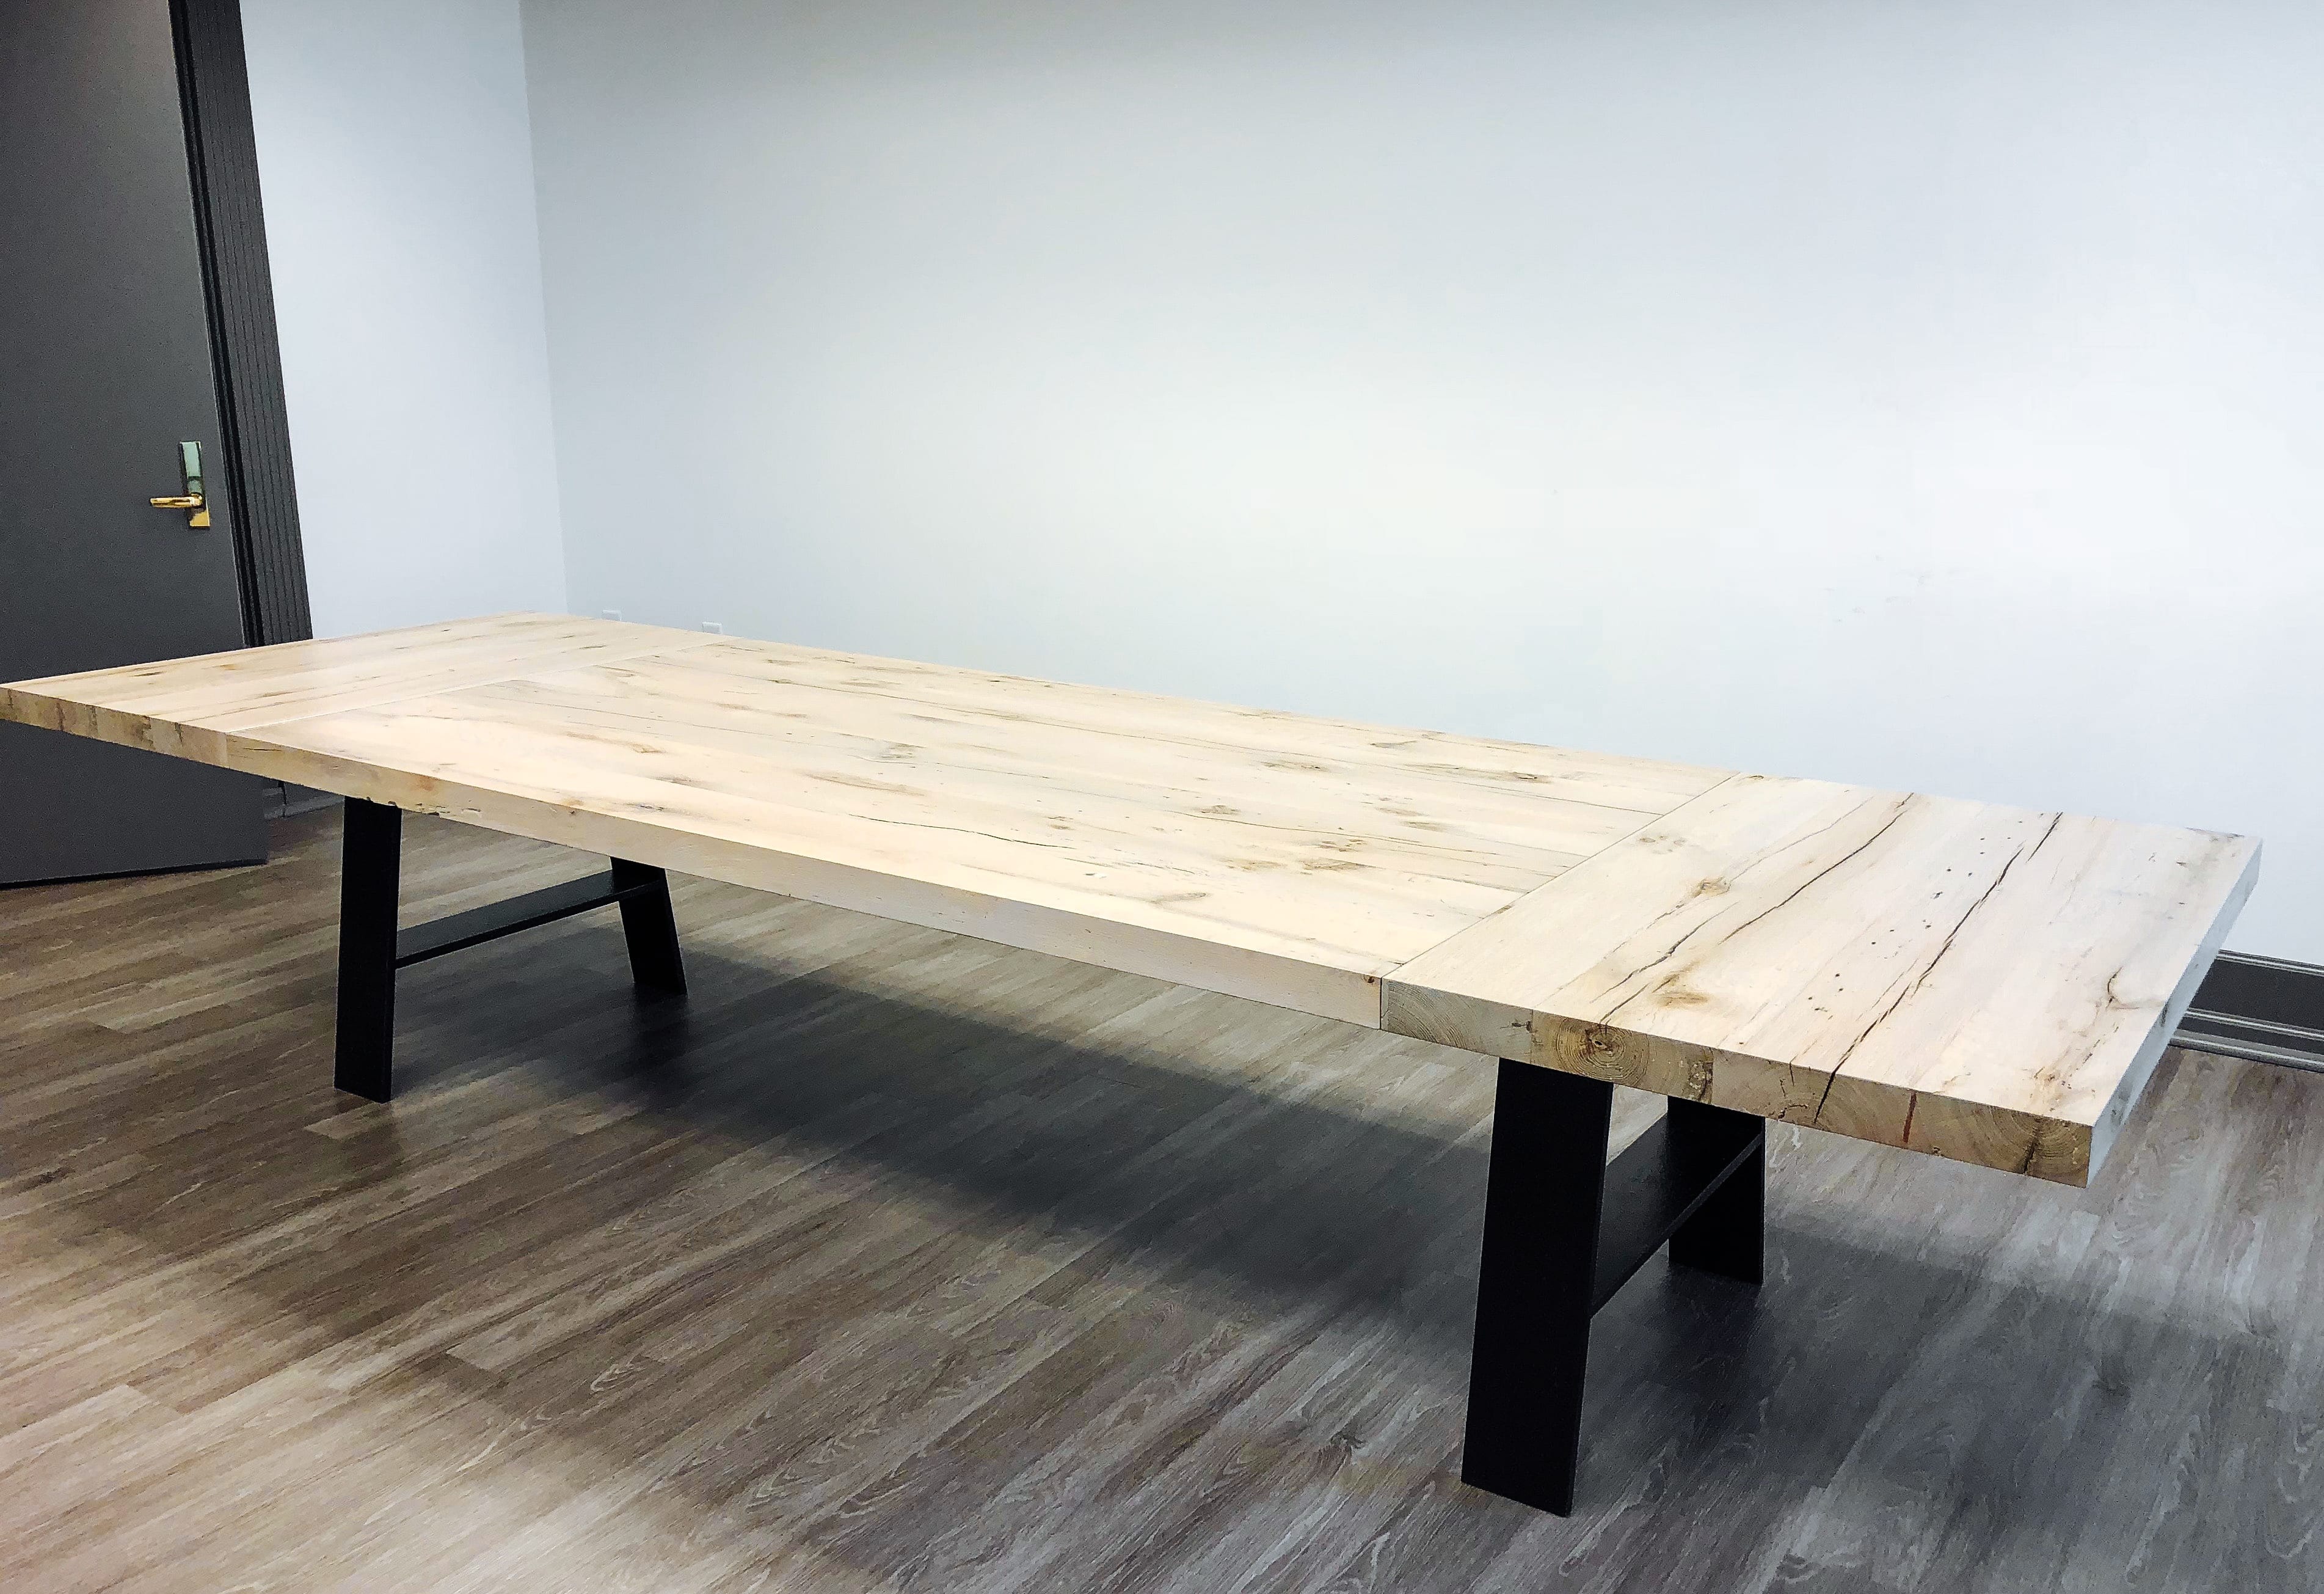 Rustic Wooden table with Steel black legs side view